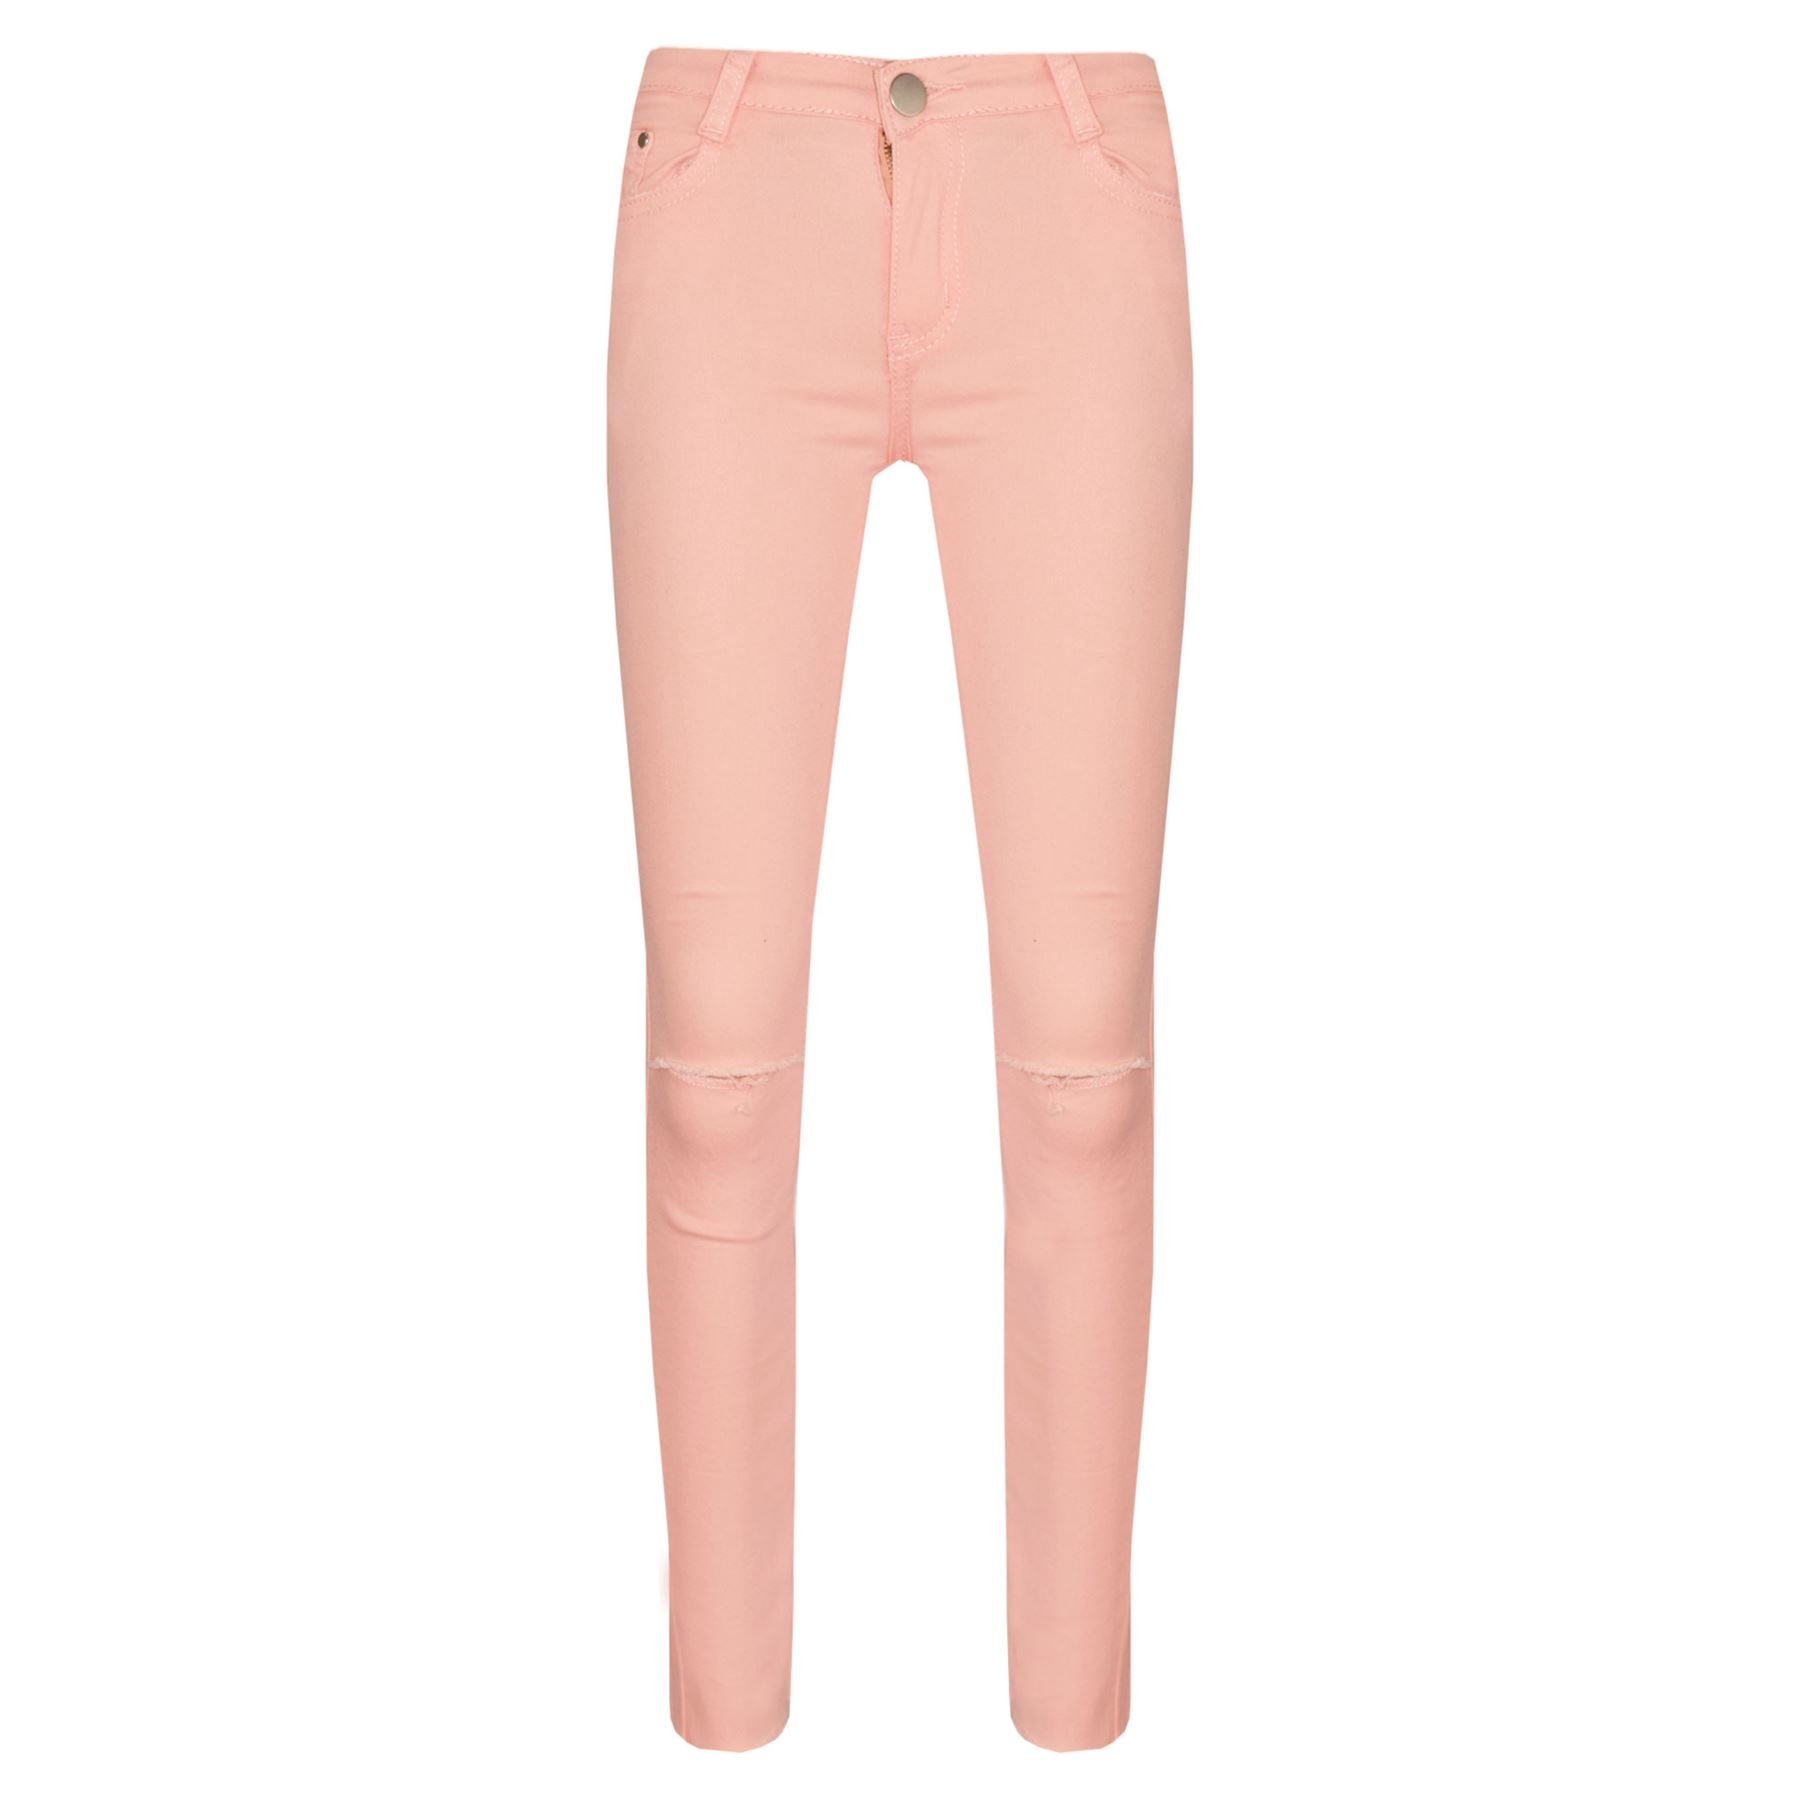 A2Z 4 Kids® Girls Stretchy Jeans Kids Peach Denim Ripped Pants Frayed Trousers Age 5-13 Year